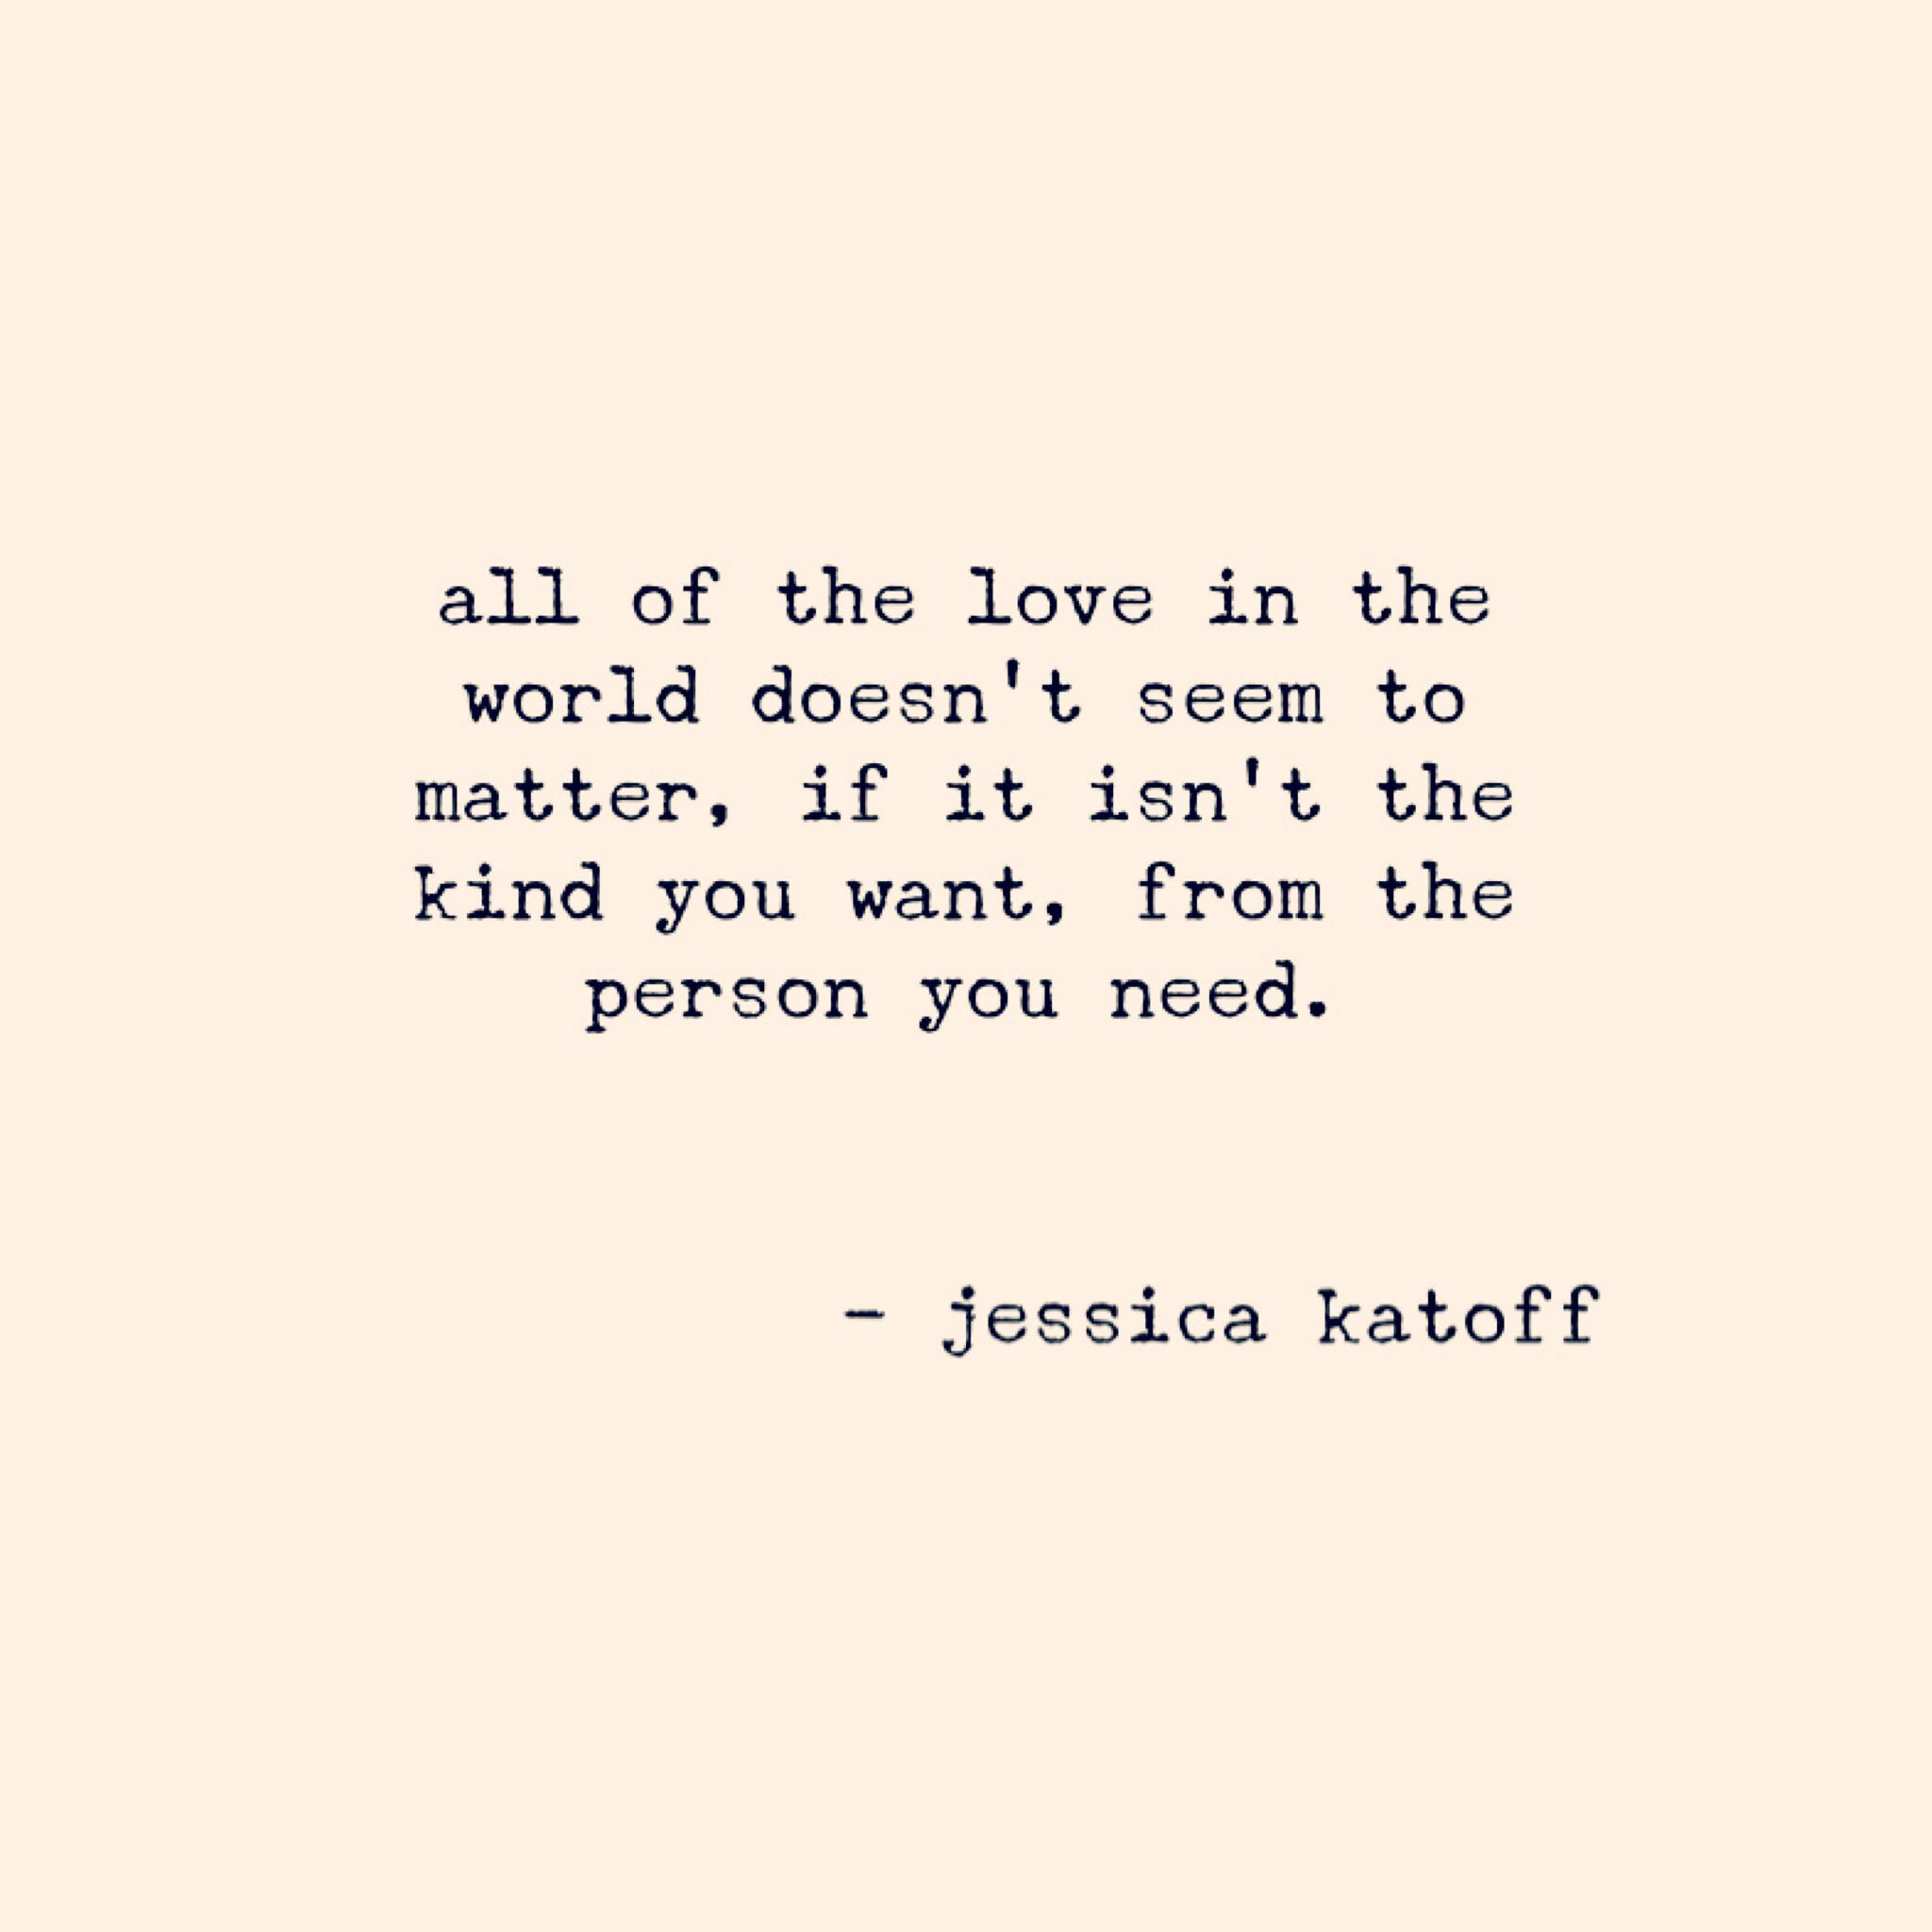 Citaten Love Poem : Original poetry by jessica katoff http instagram